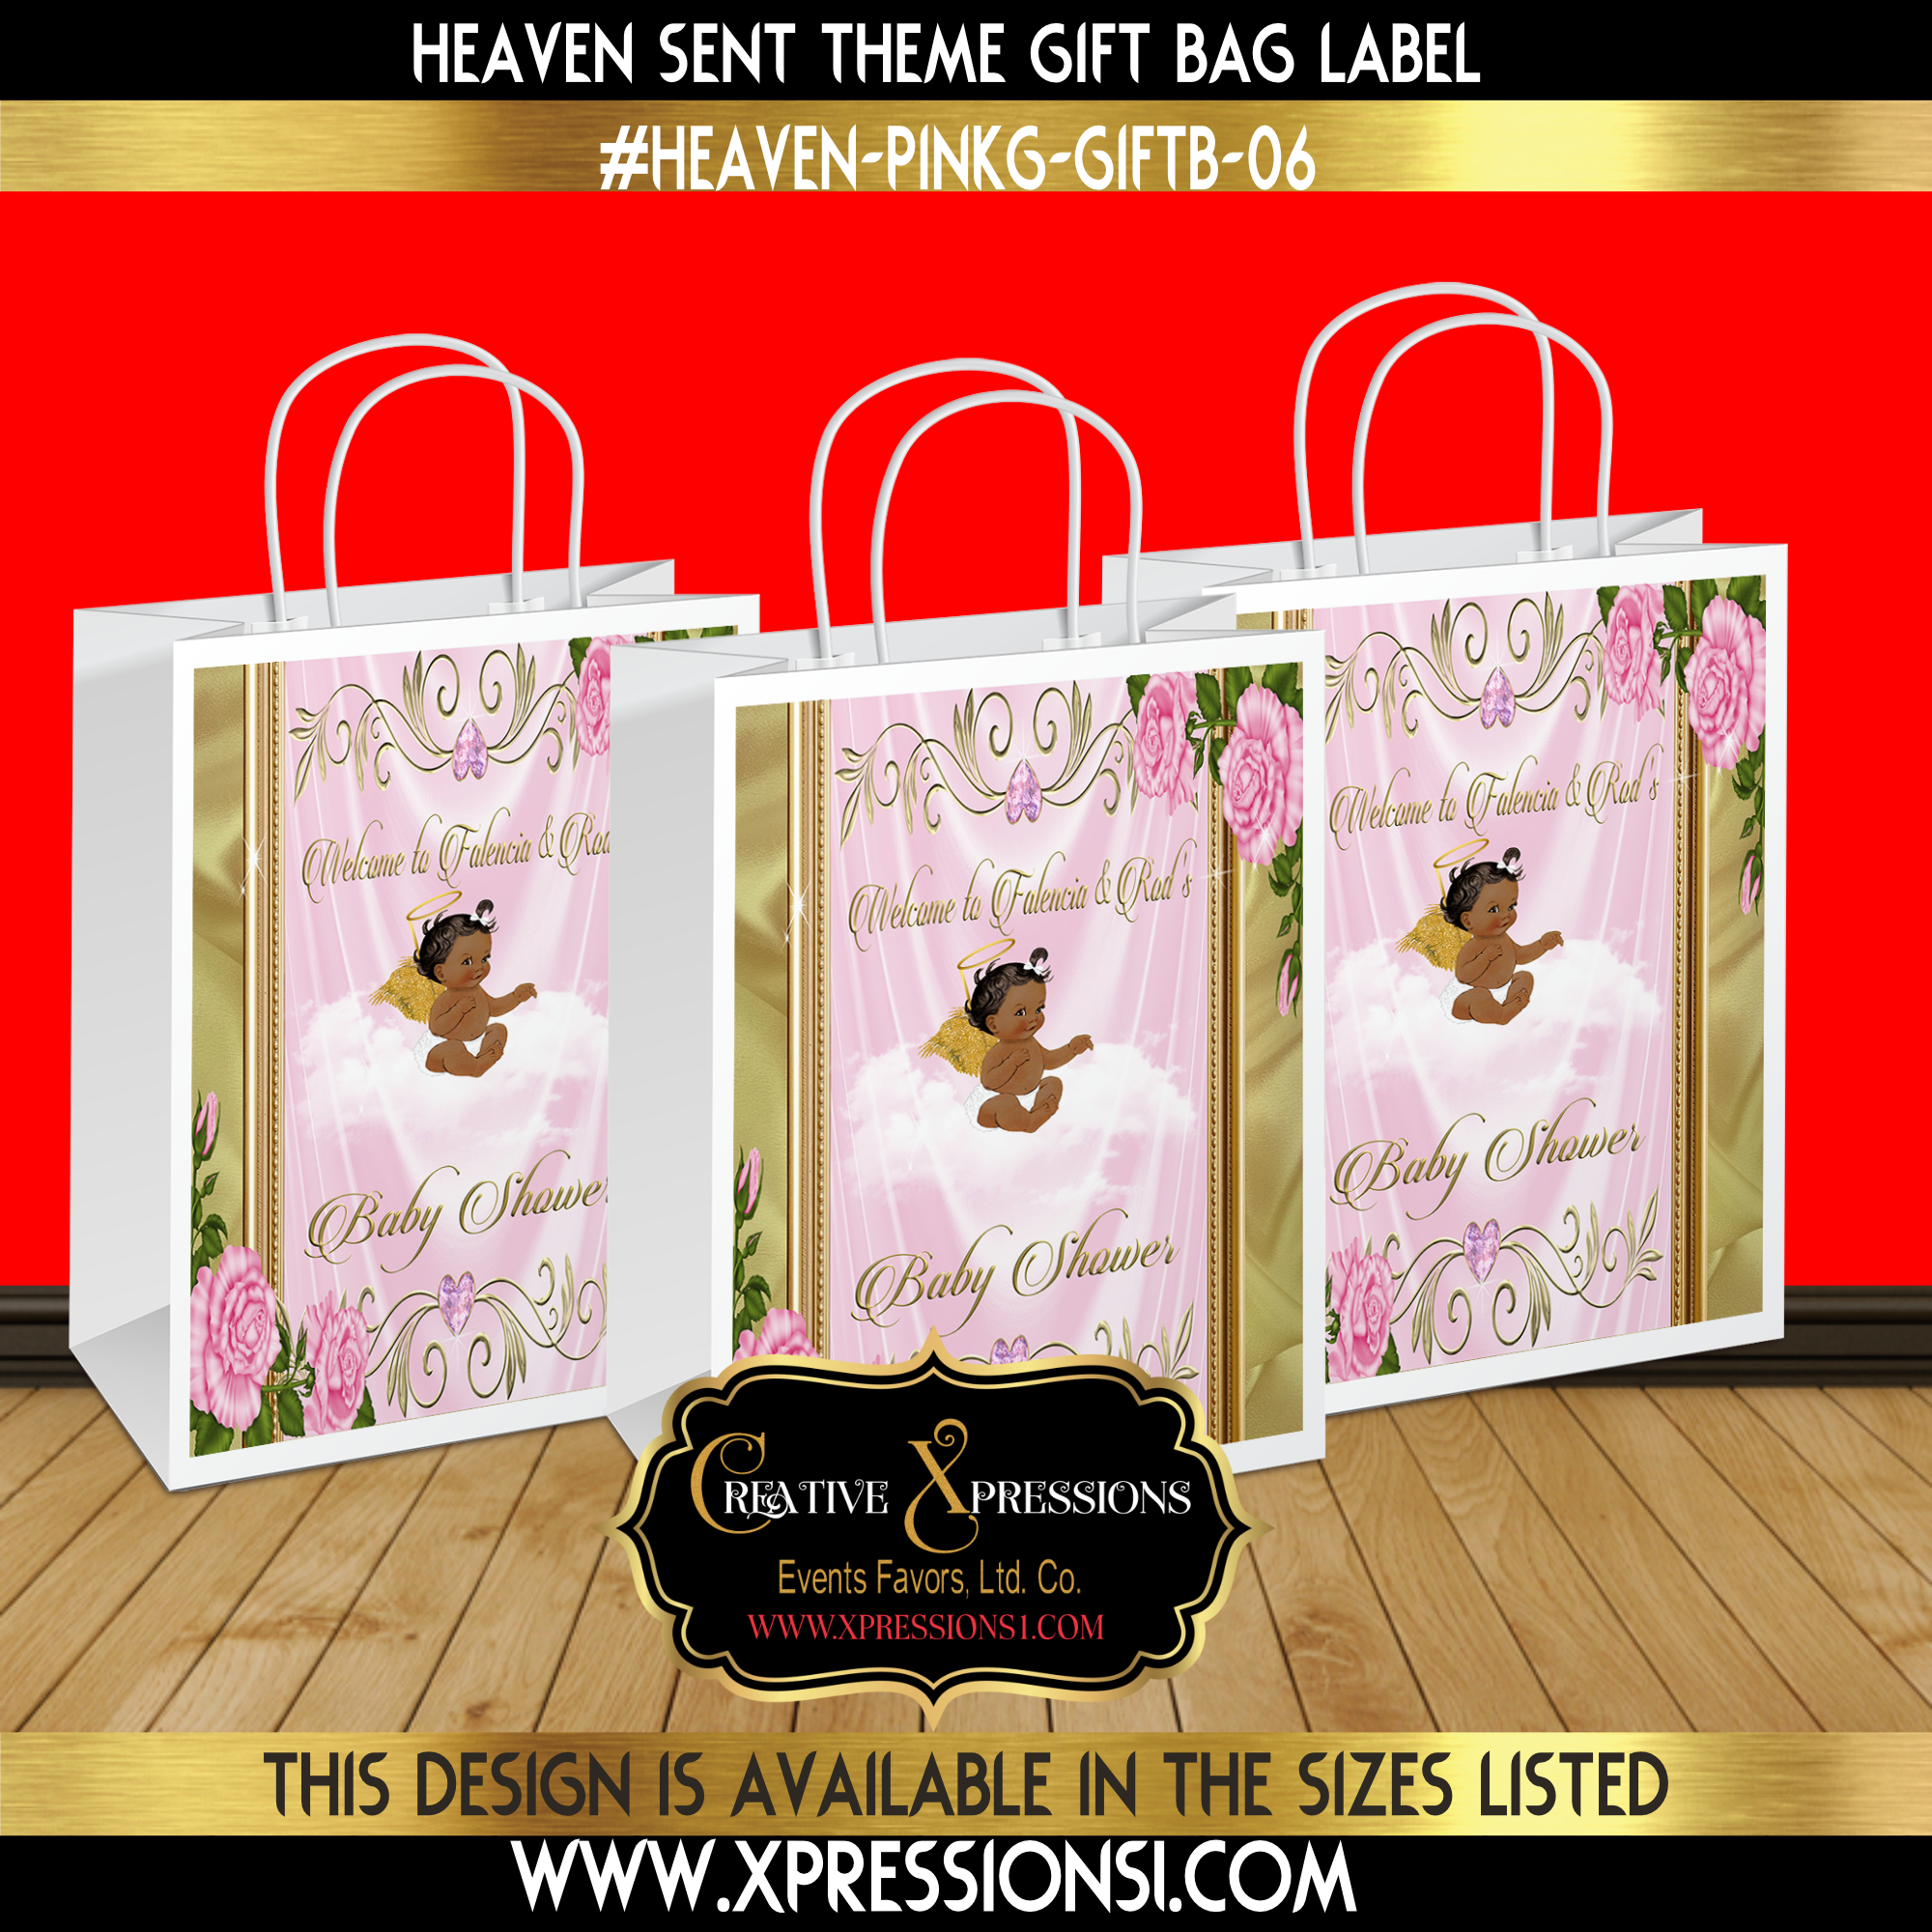 Florals on Frame Gift Bag Label